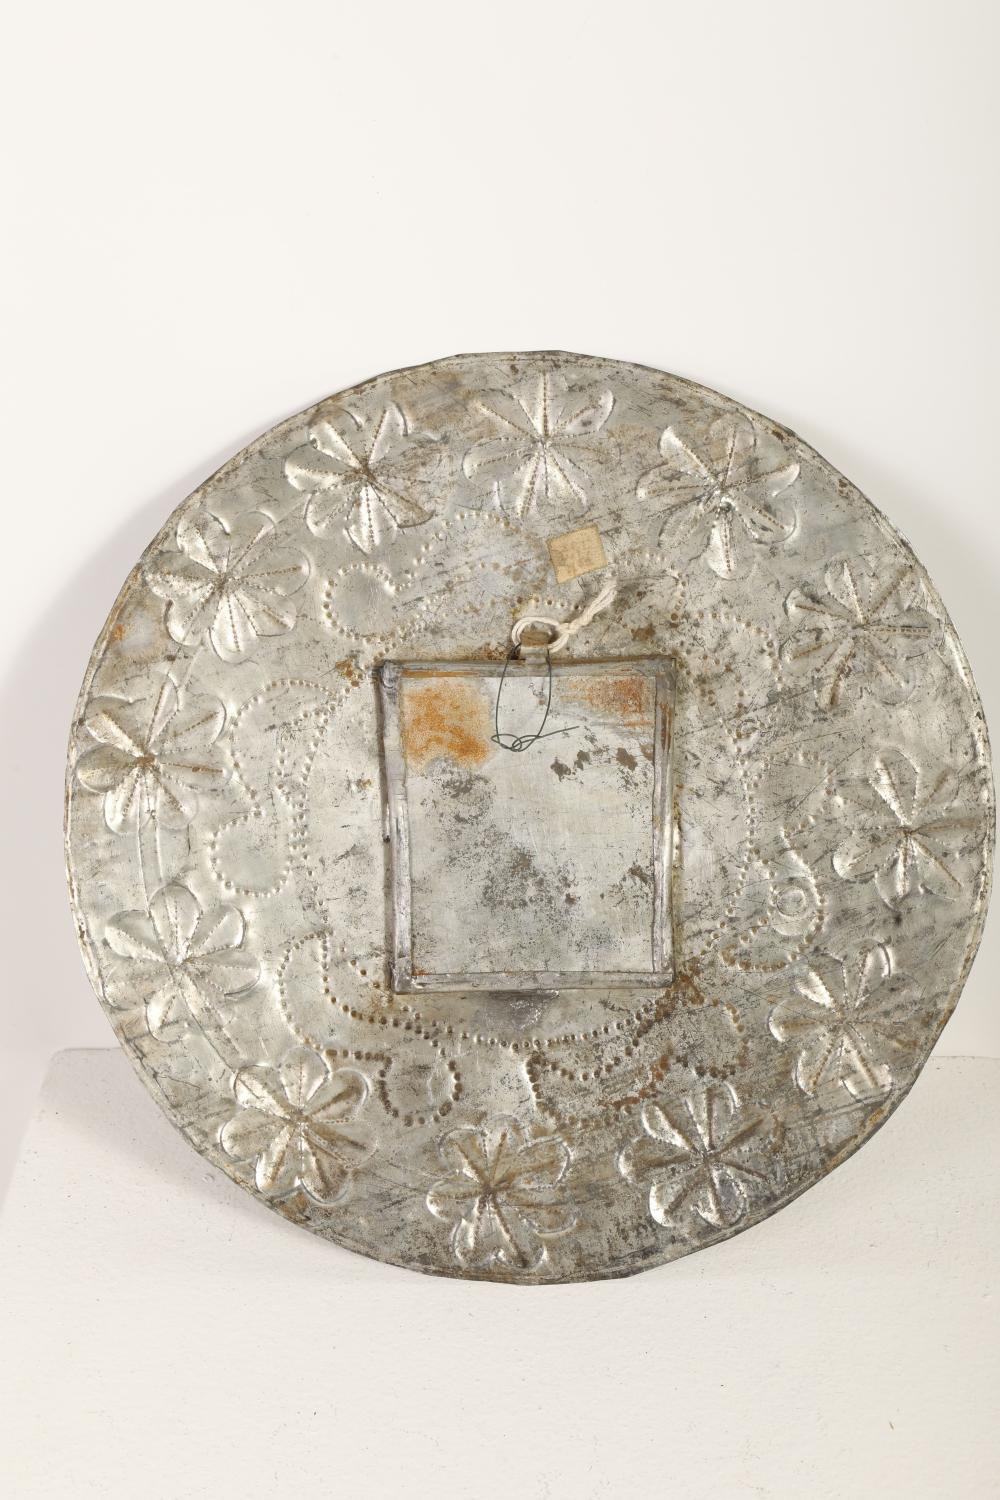 Tin Sconce with Devotional Card, ca. 1870-1900